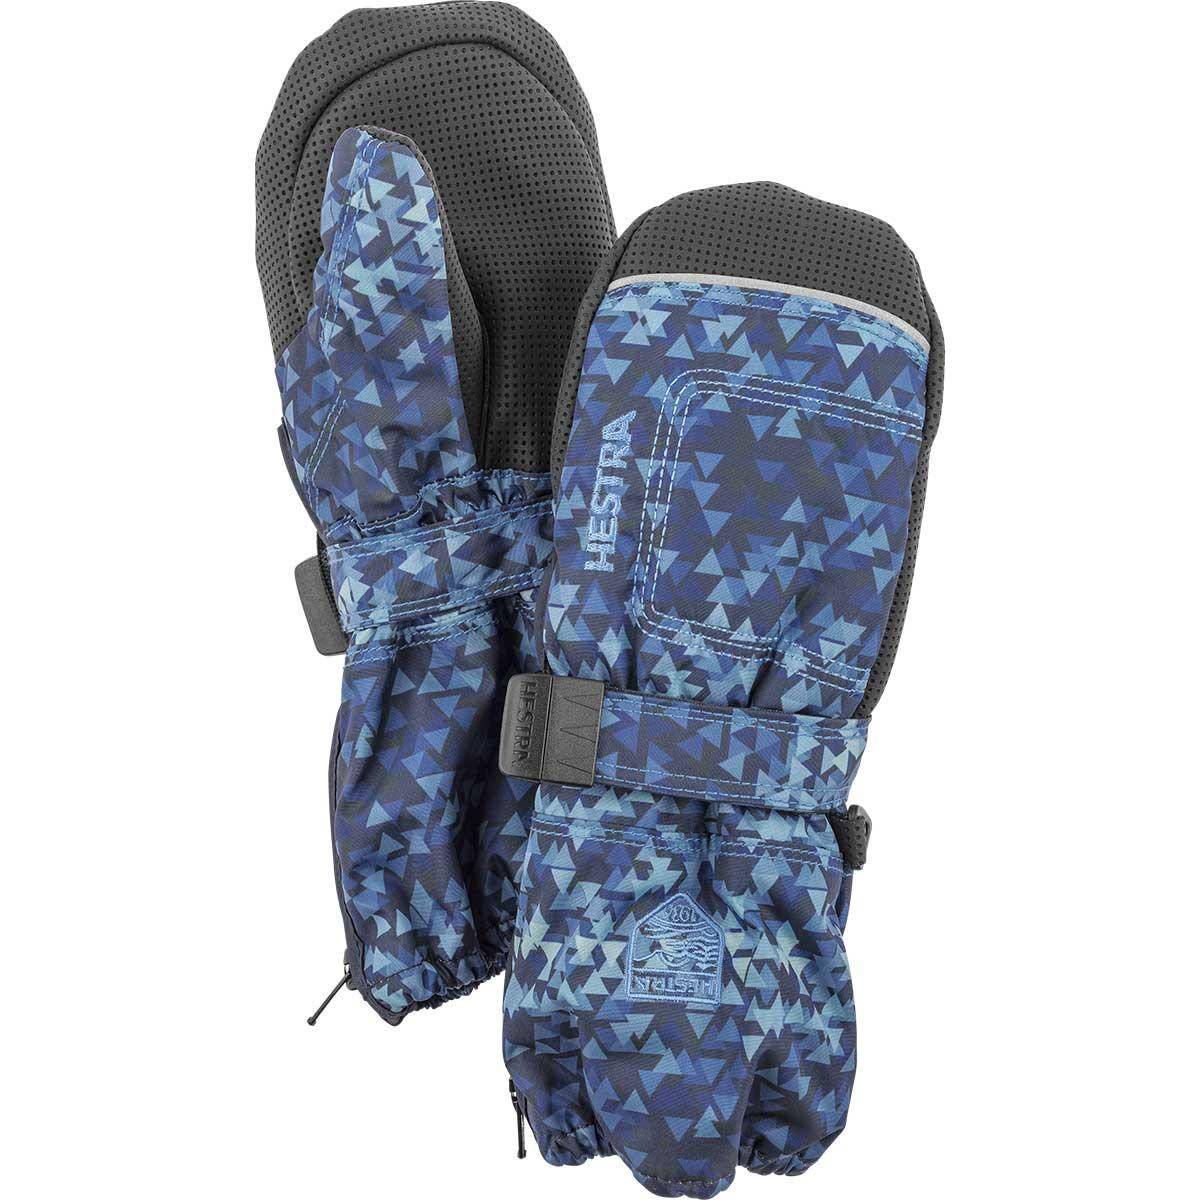 Hestra Baby Zip Long Mittens in navy print